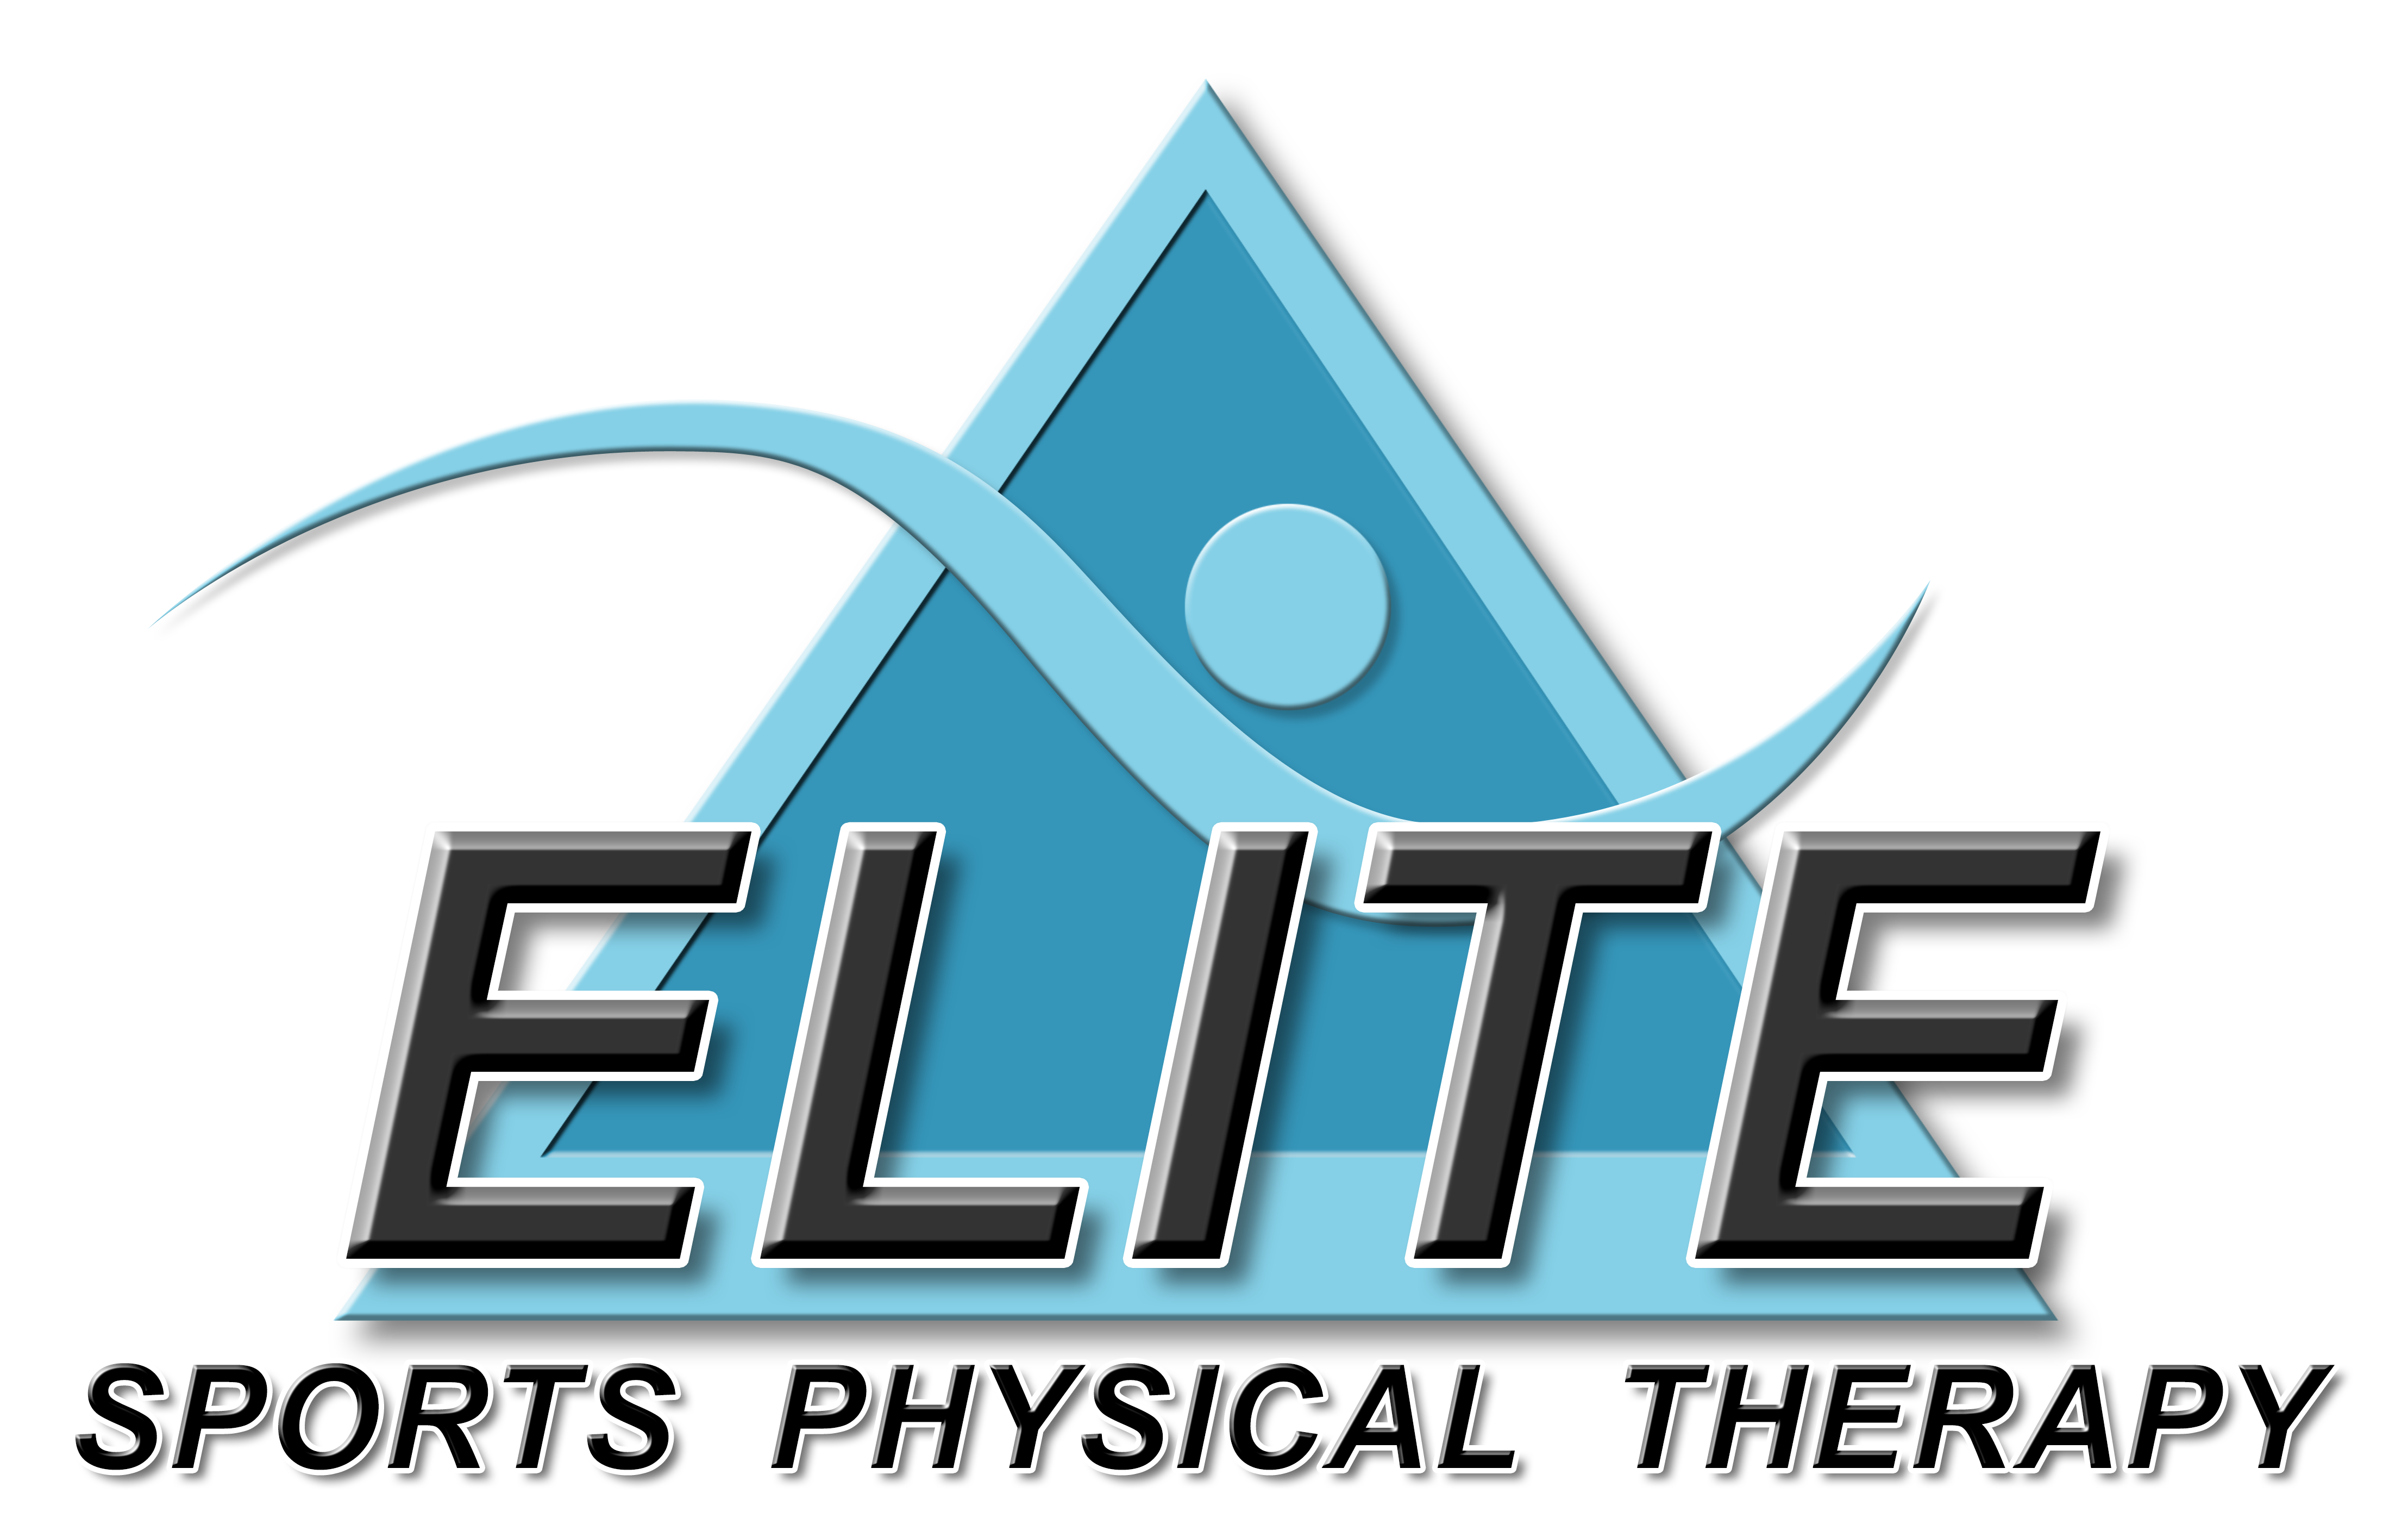 And sports injury rehab. Pe clipart school physical therapy